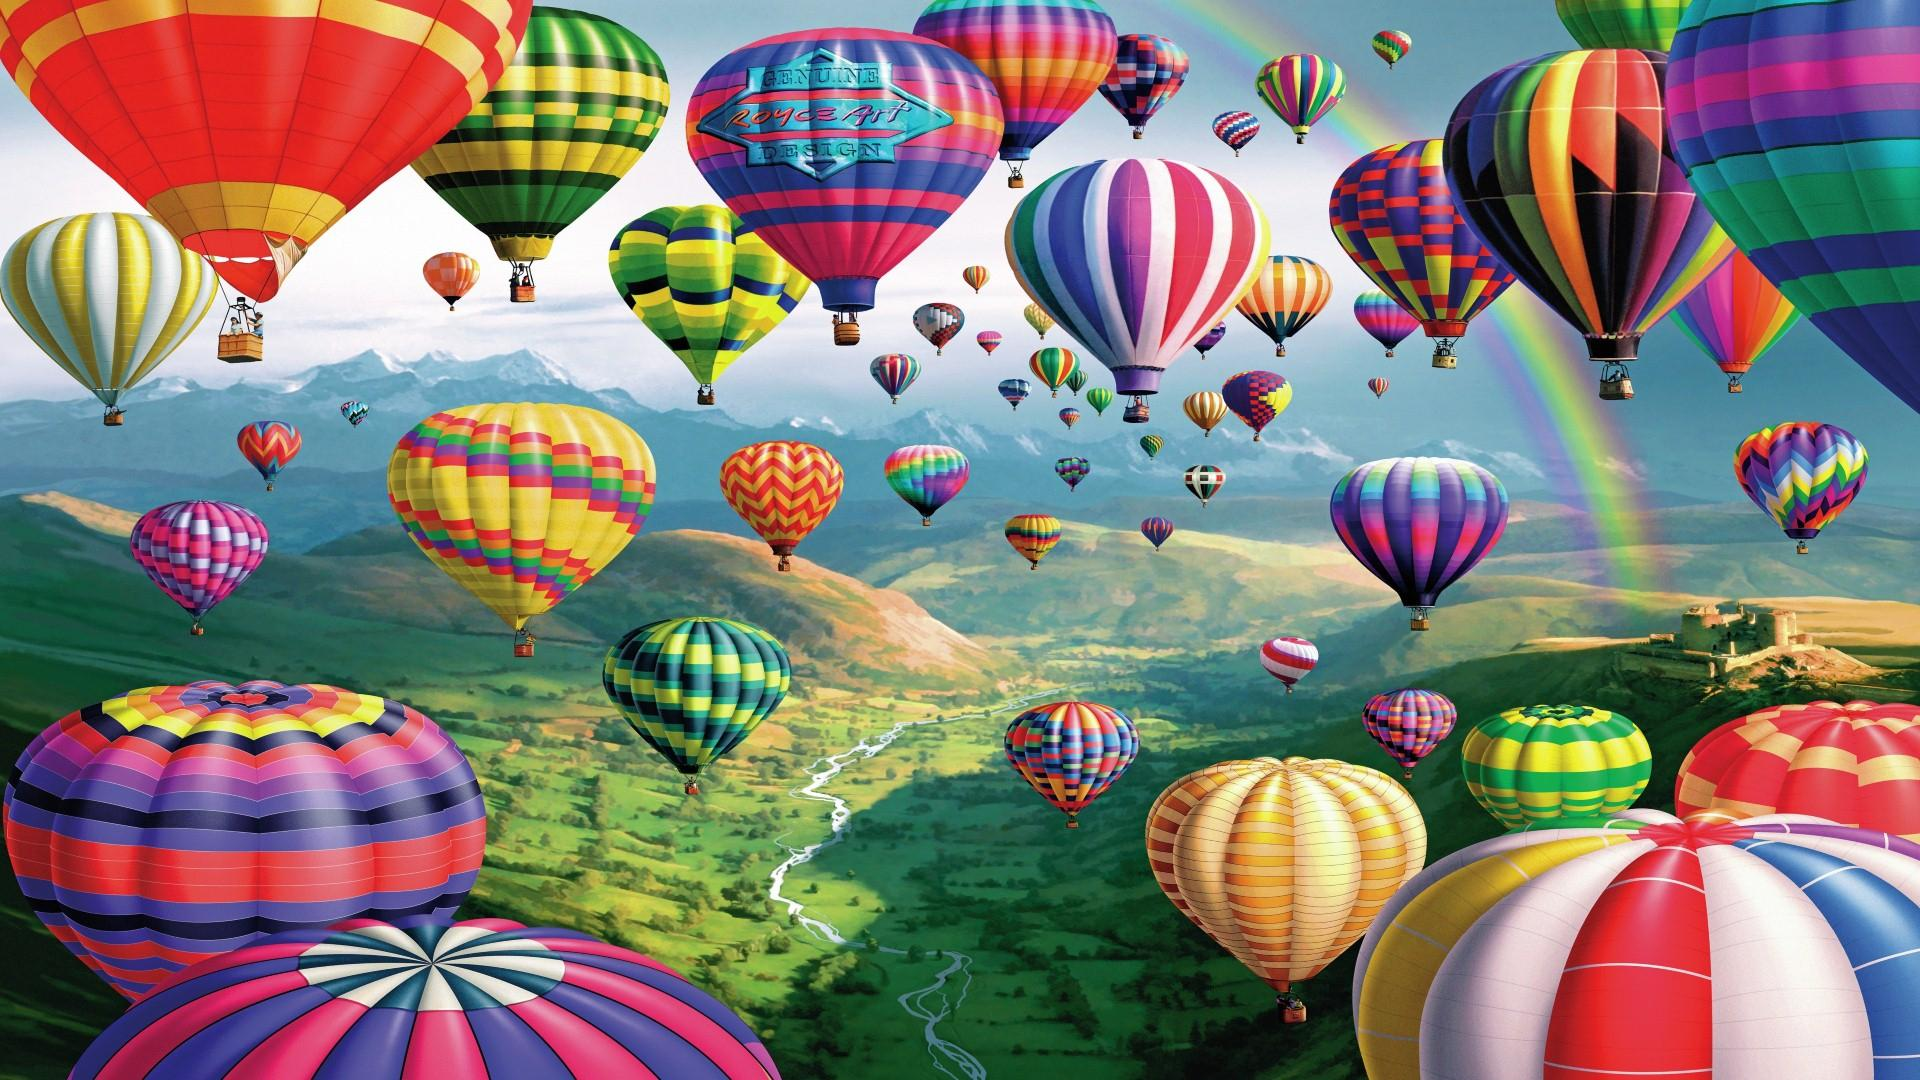 Free Download Air Balloons 1920x1080 For Your Desktop Mobile